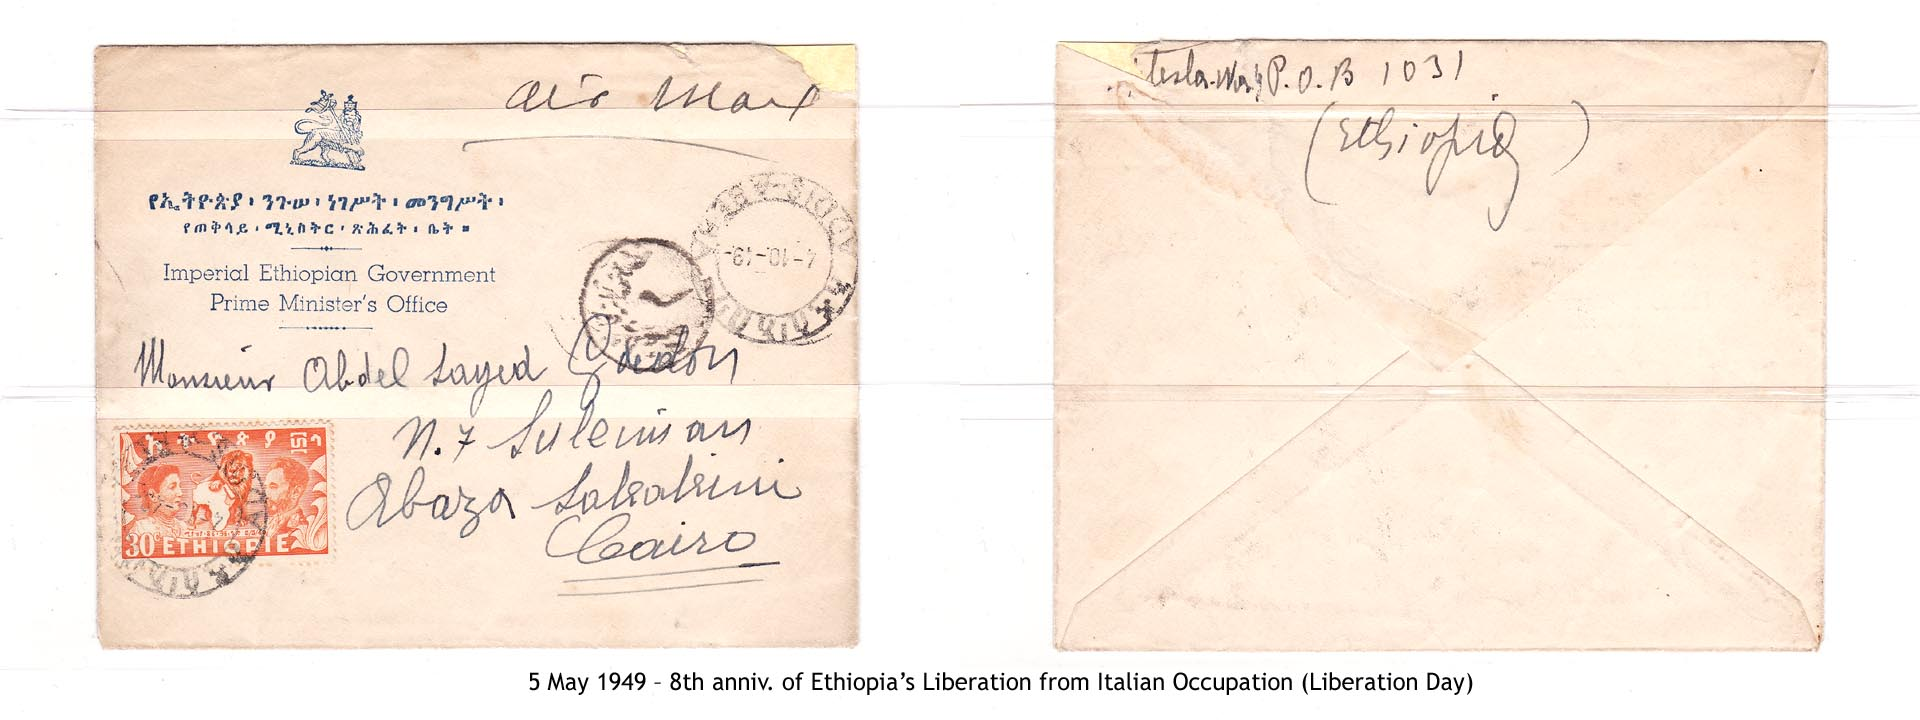 19490505 – 8th anniv. of Ethiopia's Liberation from Italian Occupation (Liberation Day)